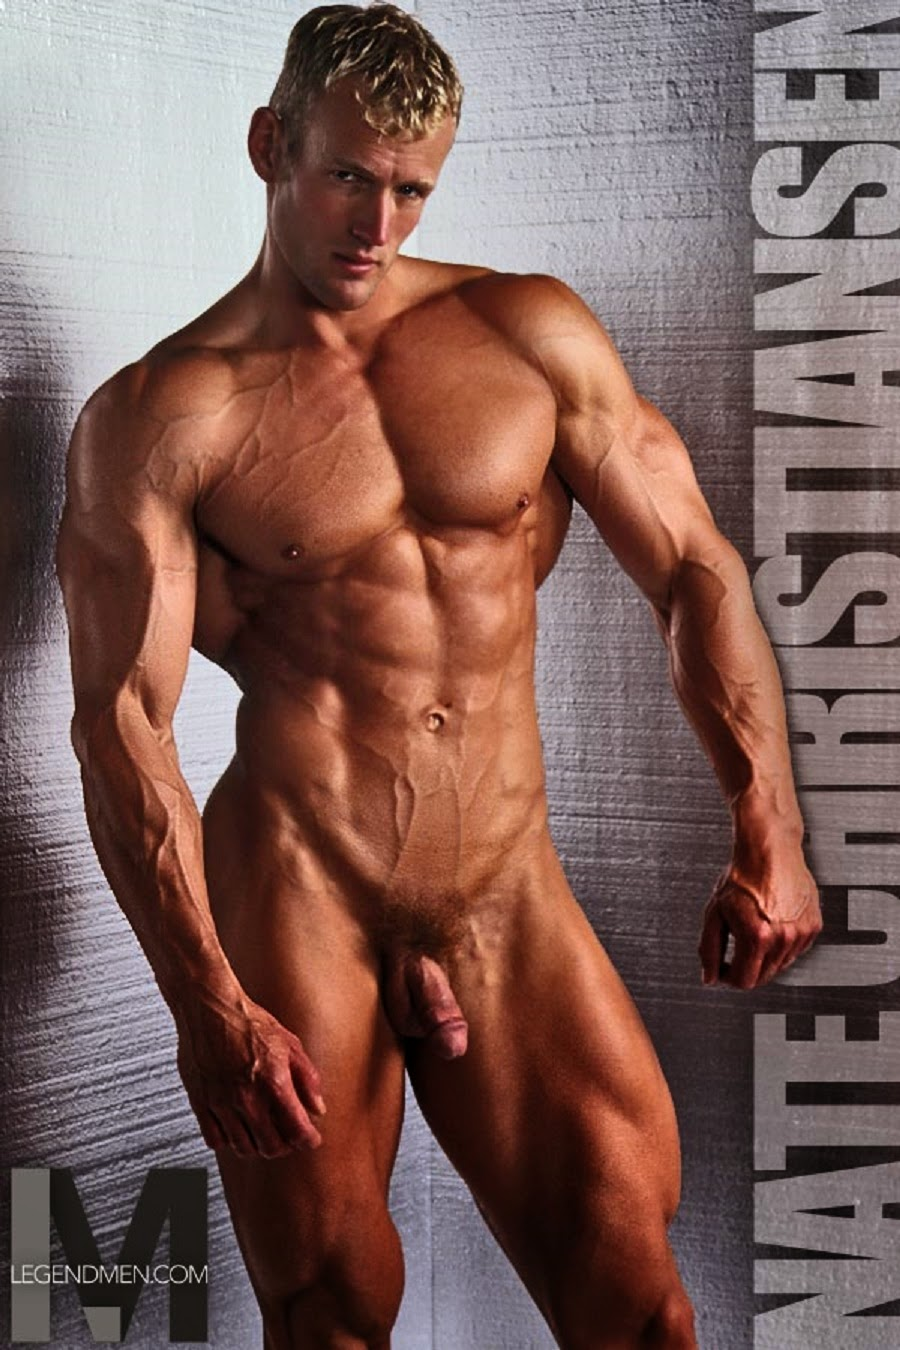 Of naked bodybuilders pictures male Category:Nude men